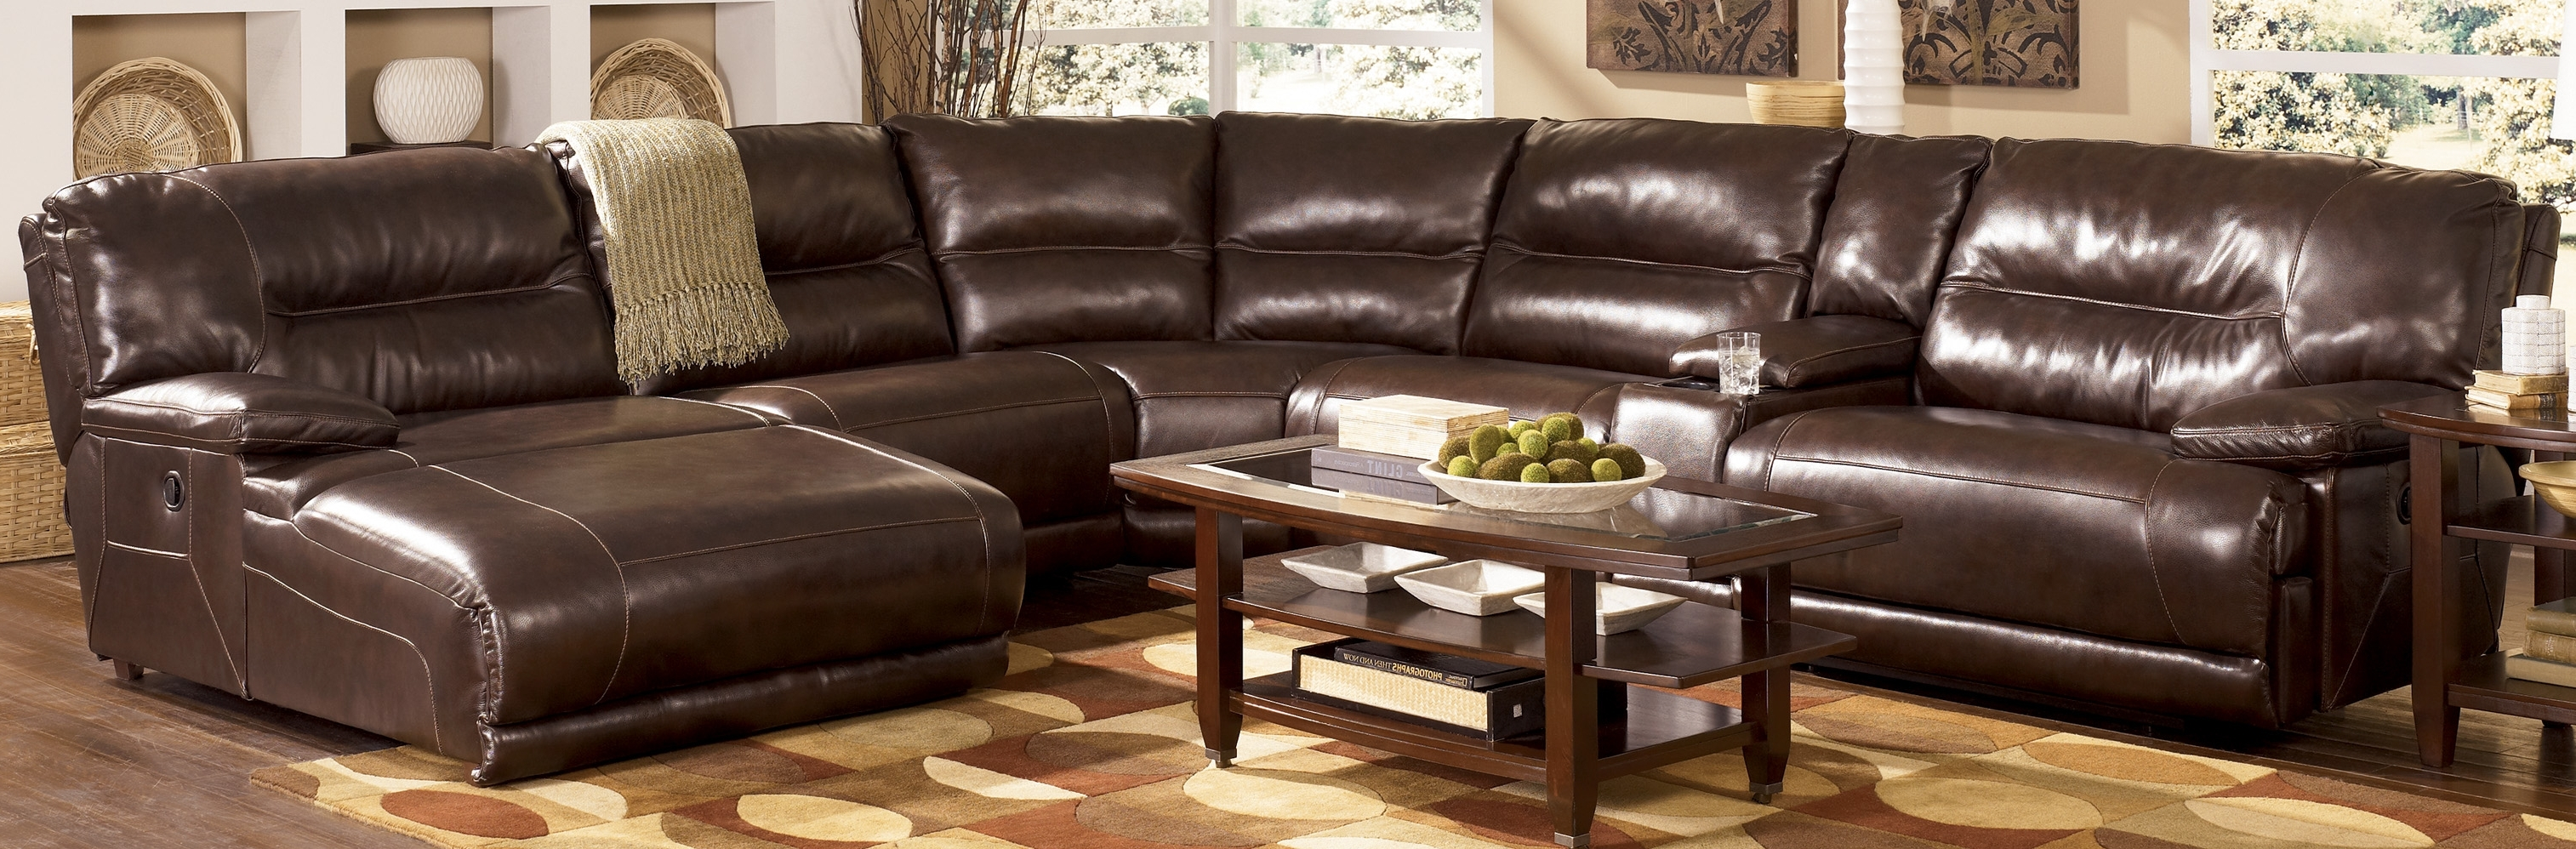 Genuine Leather Sectionals With Chaise Intended For Most Popular Faux Leather Sectional Sofa With Chaise (View 7 of 15)